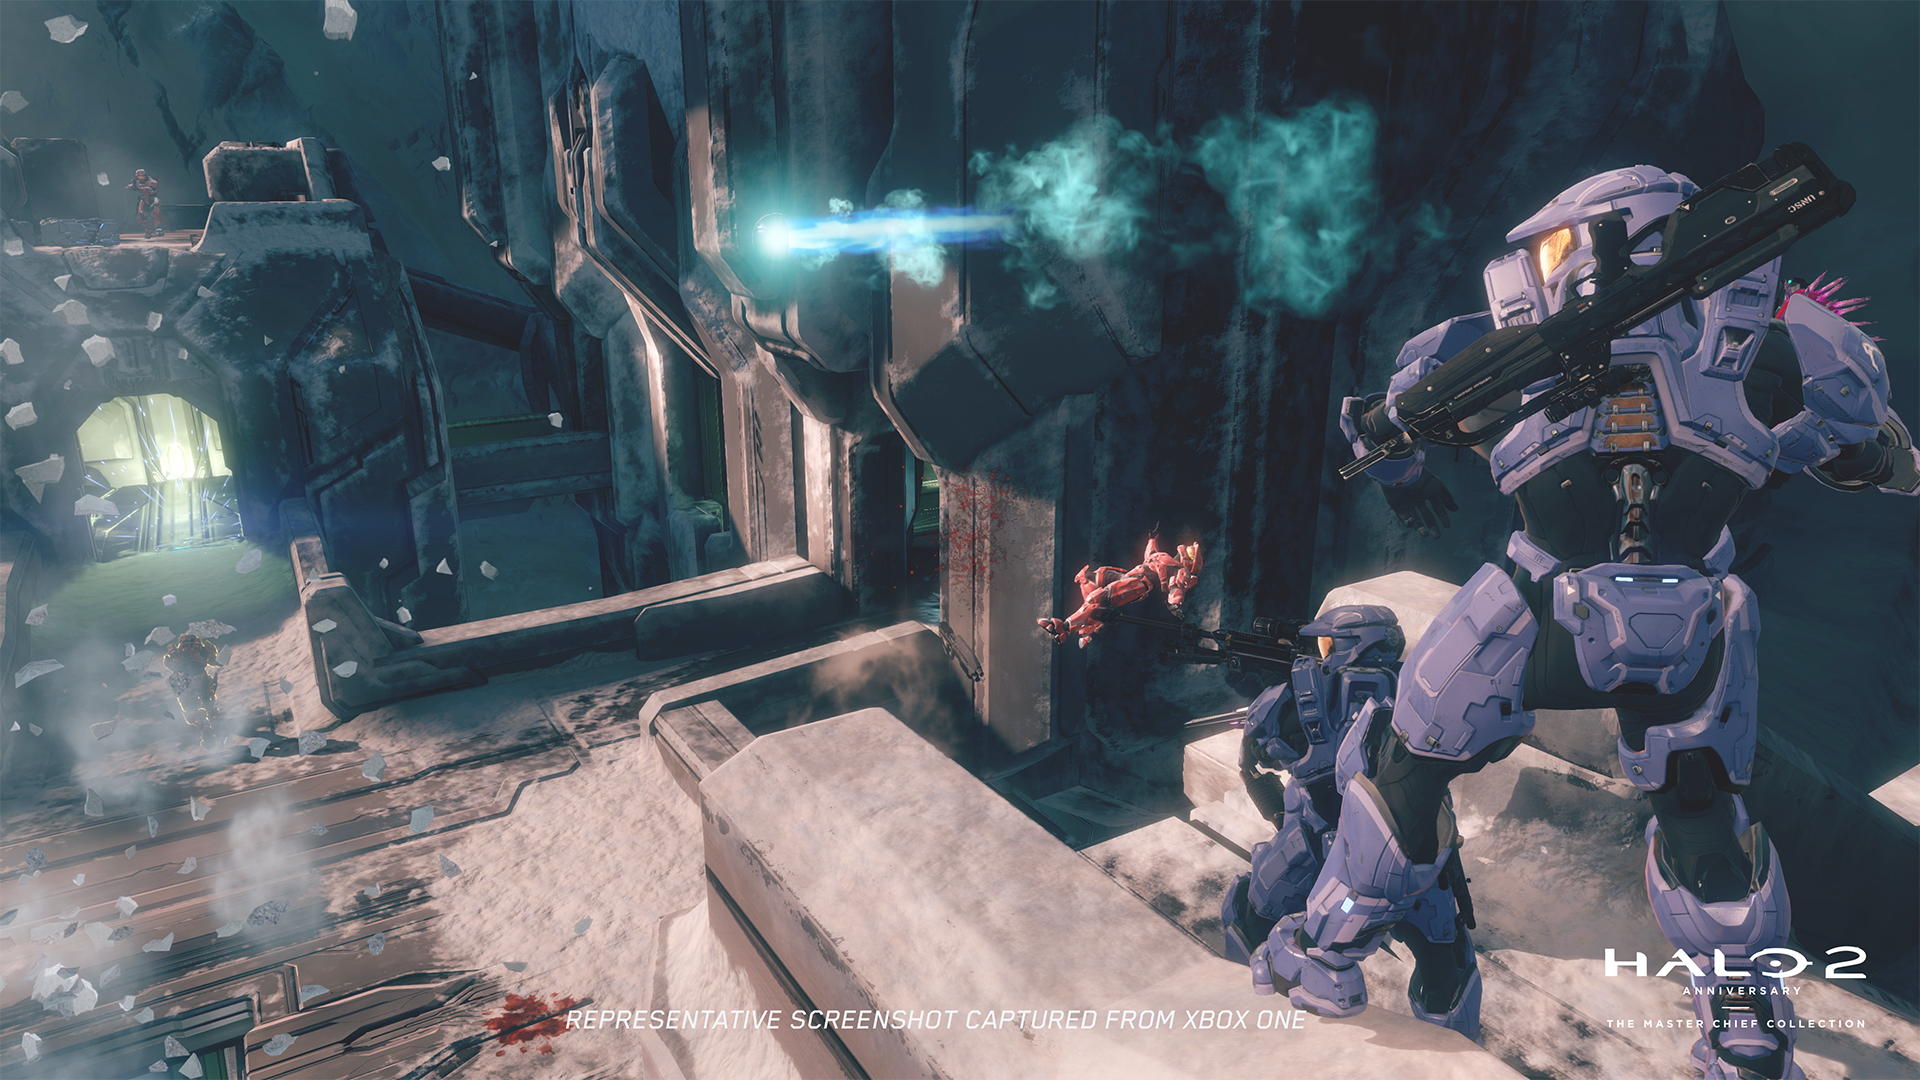 Halo-Master-Chief-Collection-2020_Halo2Anniversary_Multiplayer_12_Watermarked_1920x1080